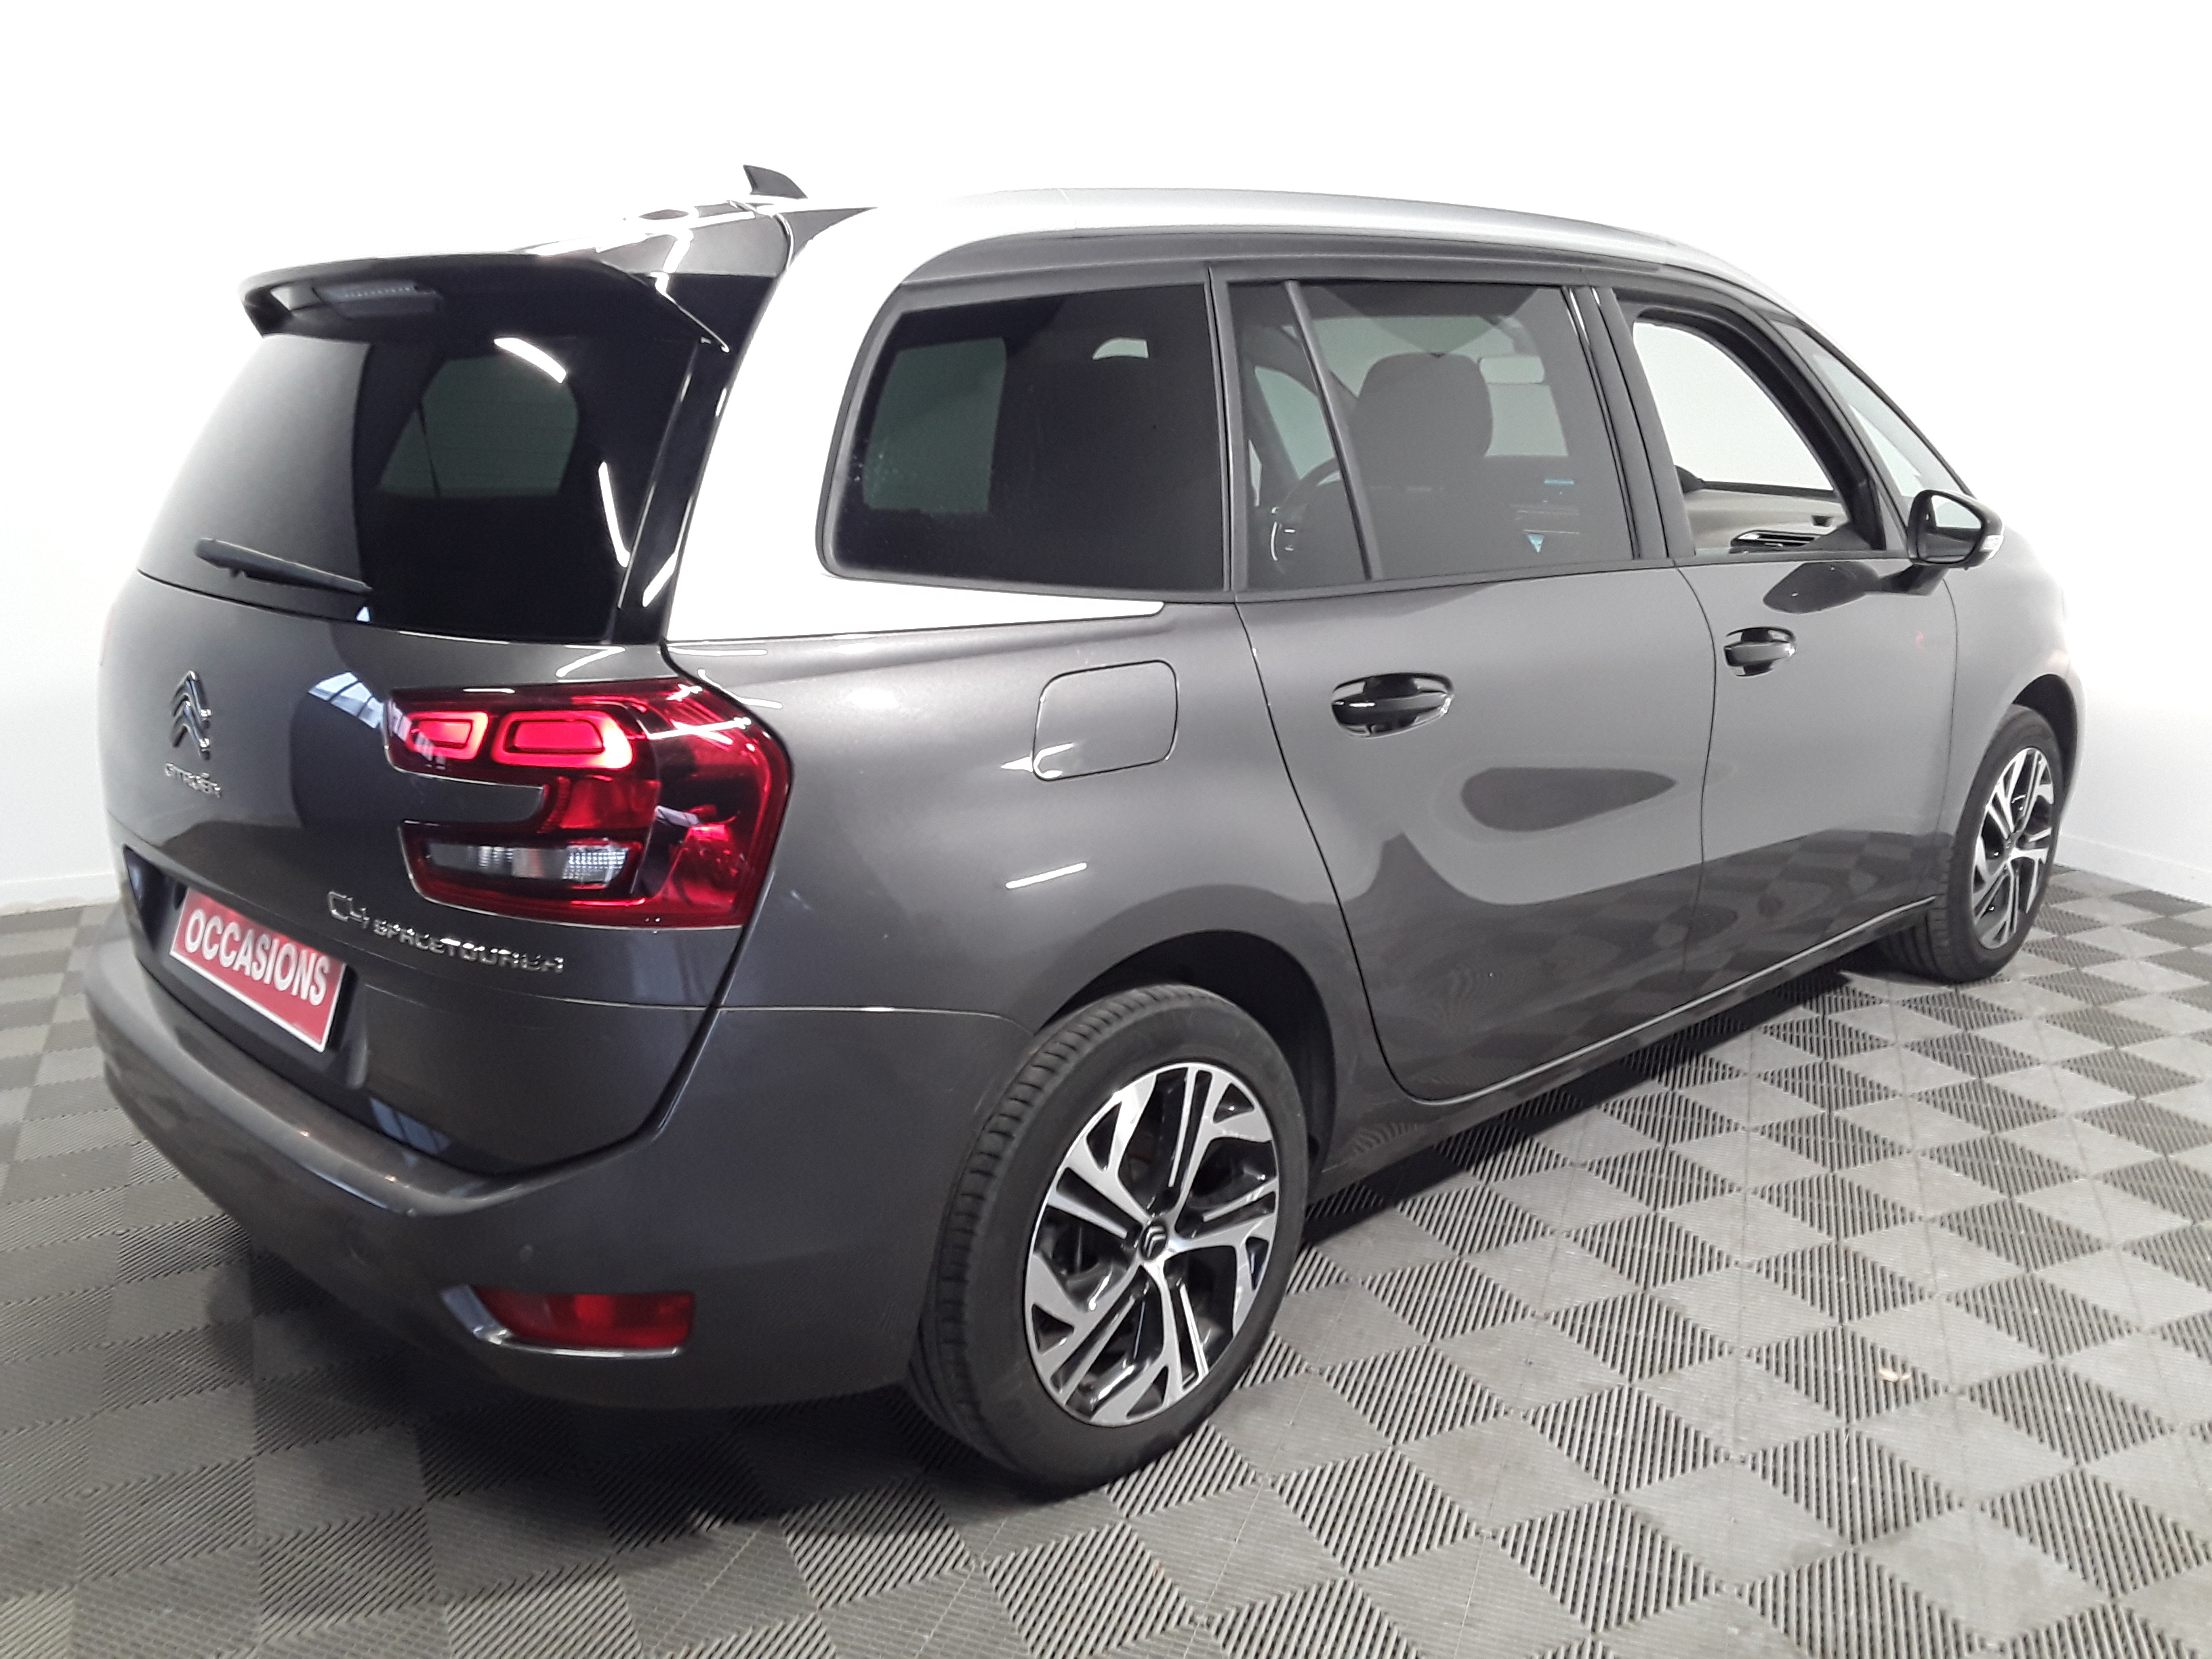 CITROEN GRAND C4 SPACETOURER 2019 - Photo n°3